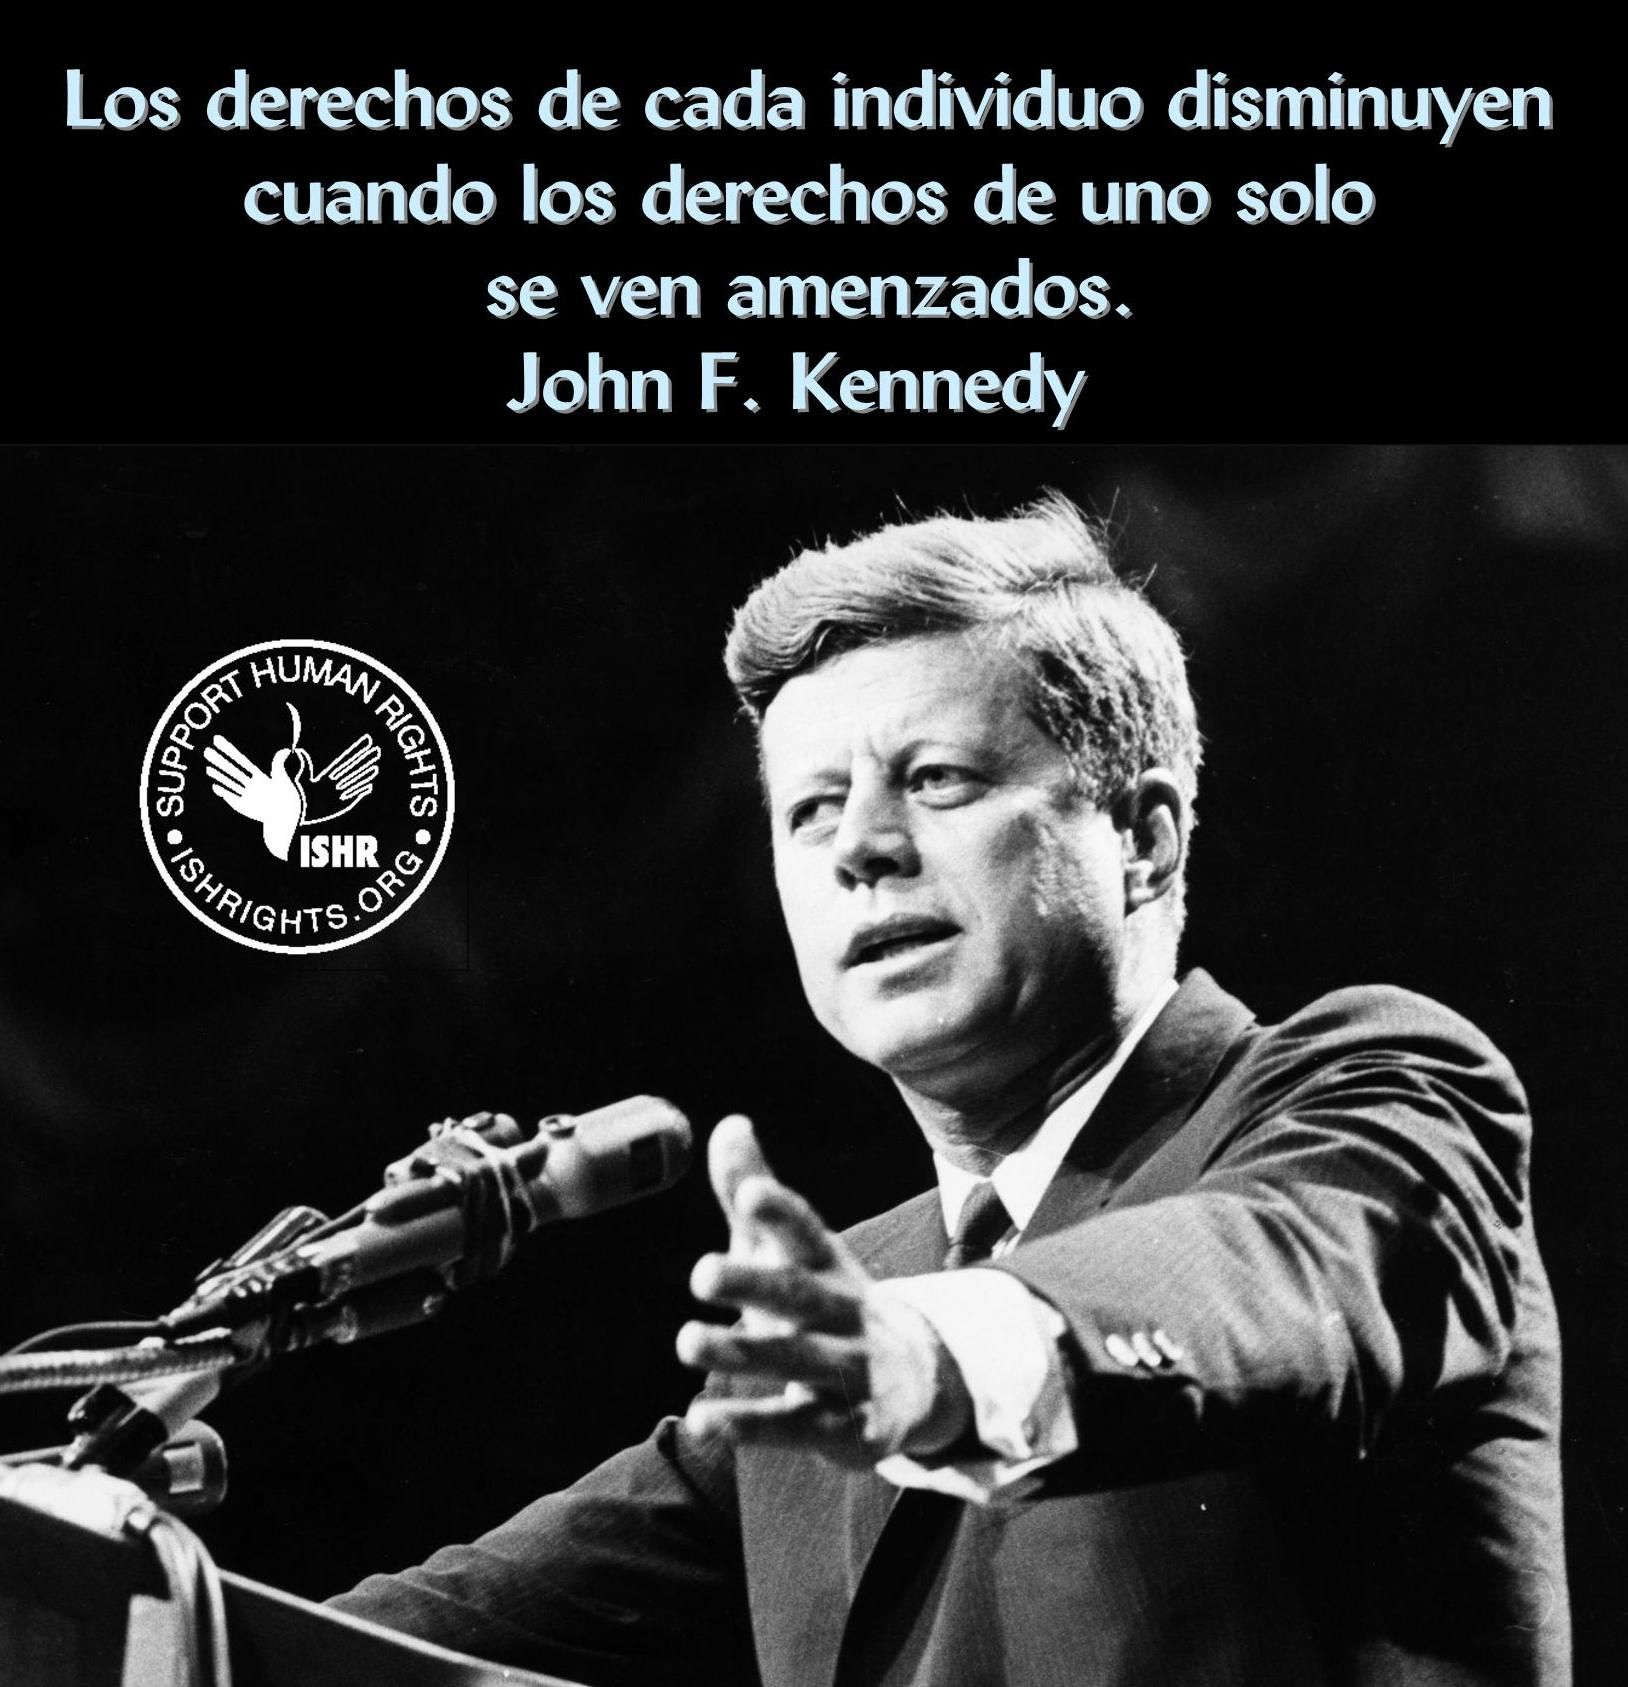 domestic policies of kennedy and johnson Kennedy domestic policies kennedy's new frontier and johnson's great society focused on many of the same key ideas although kennedy was assinated before he could see his plans through, but johnson fell through with some of them.